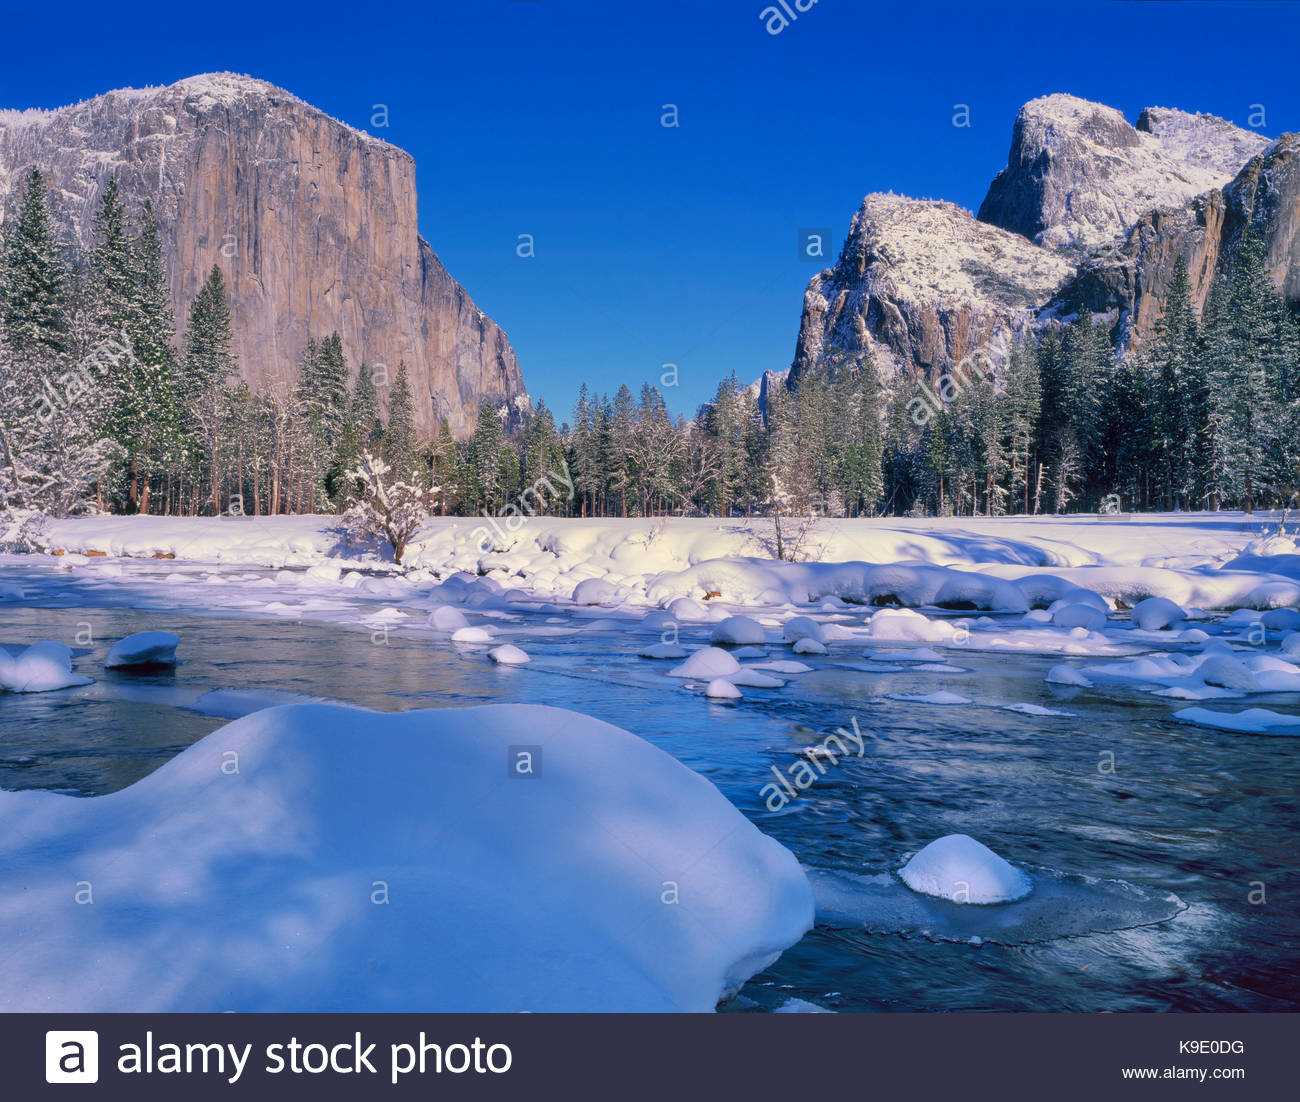 Gates of the Valley in Winter, Yosemite National Park, California - Stock Image